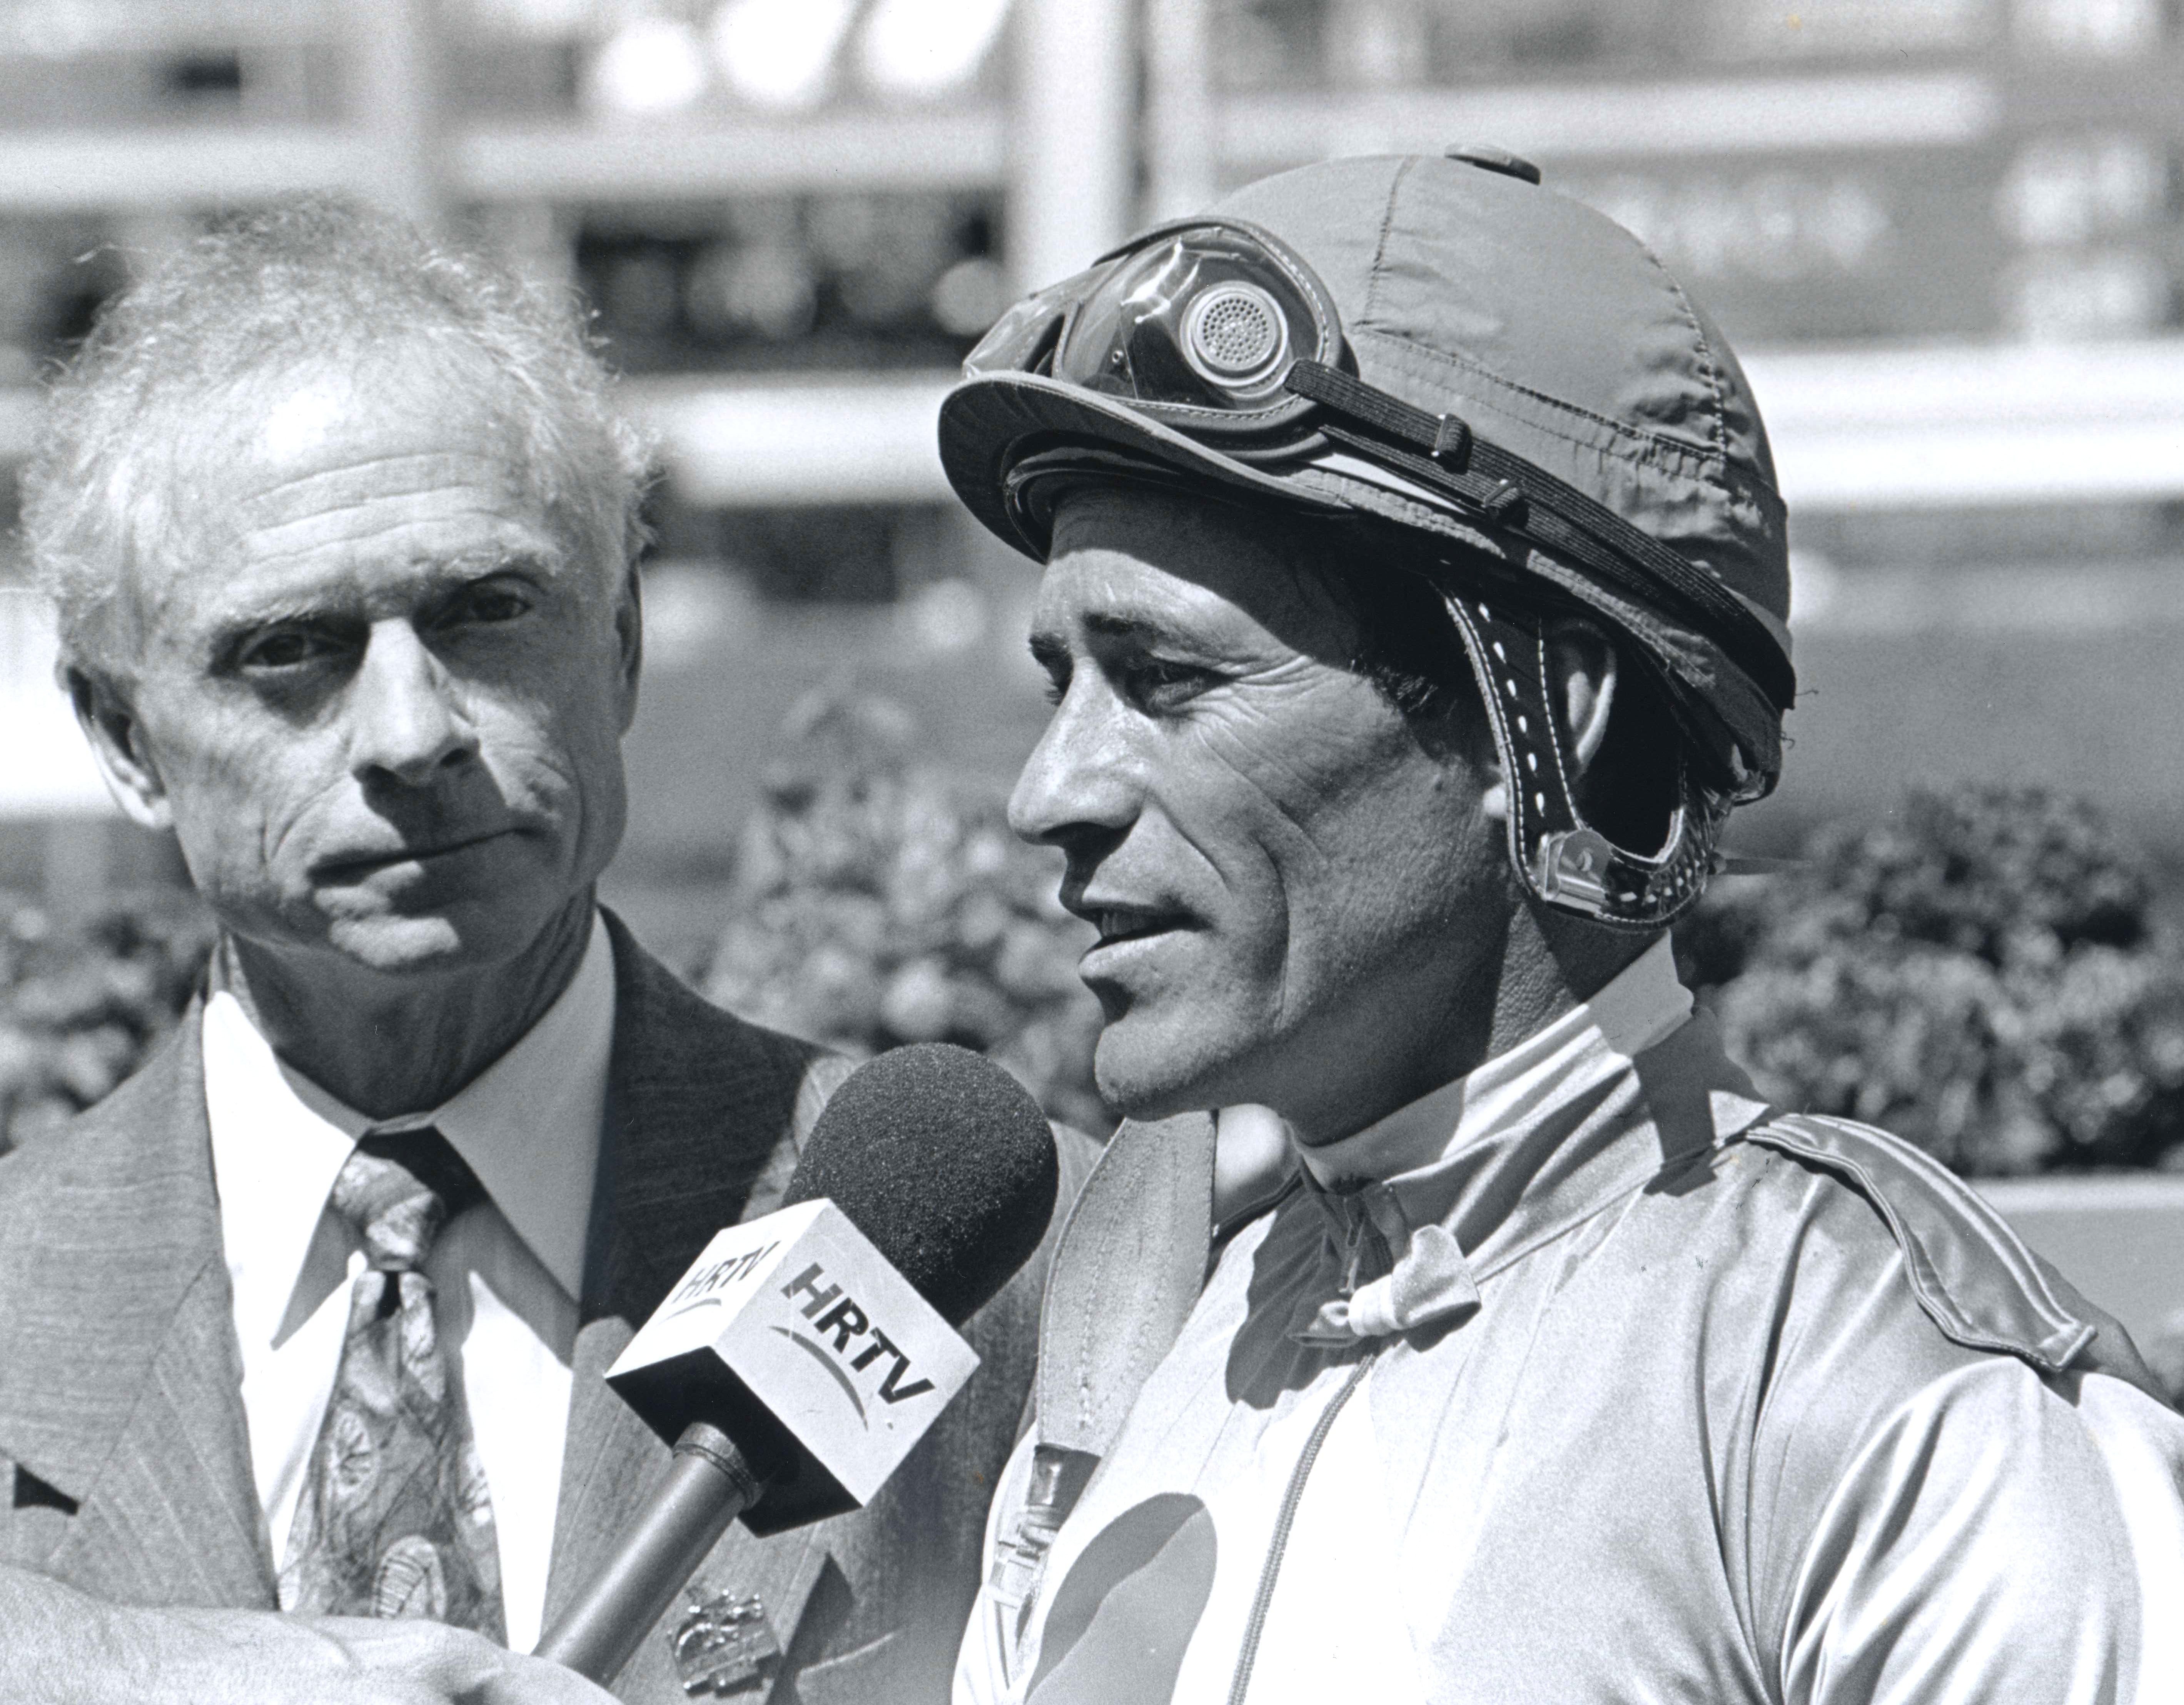 Gary Steven expresses gratitude for tribute in the winners circle celebration on his record nine wins of the Santa Anita Derby, April 19, 2003 (Bill Mochon/Museum Collection)